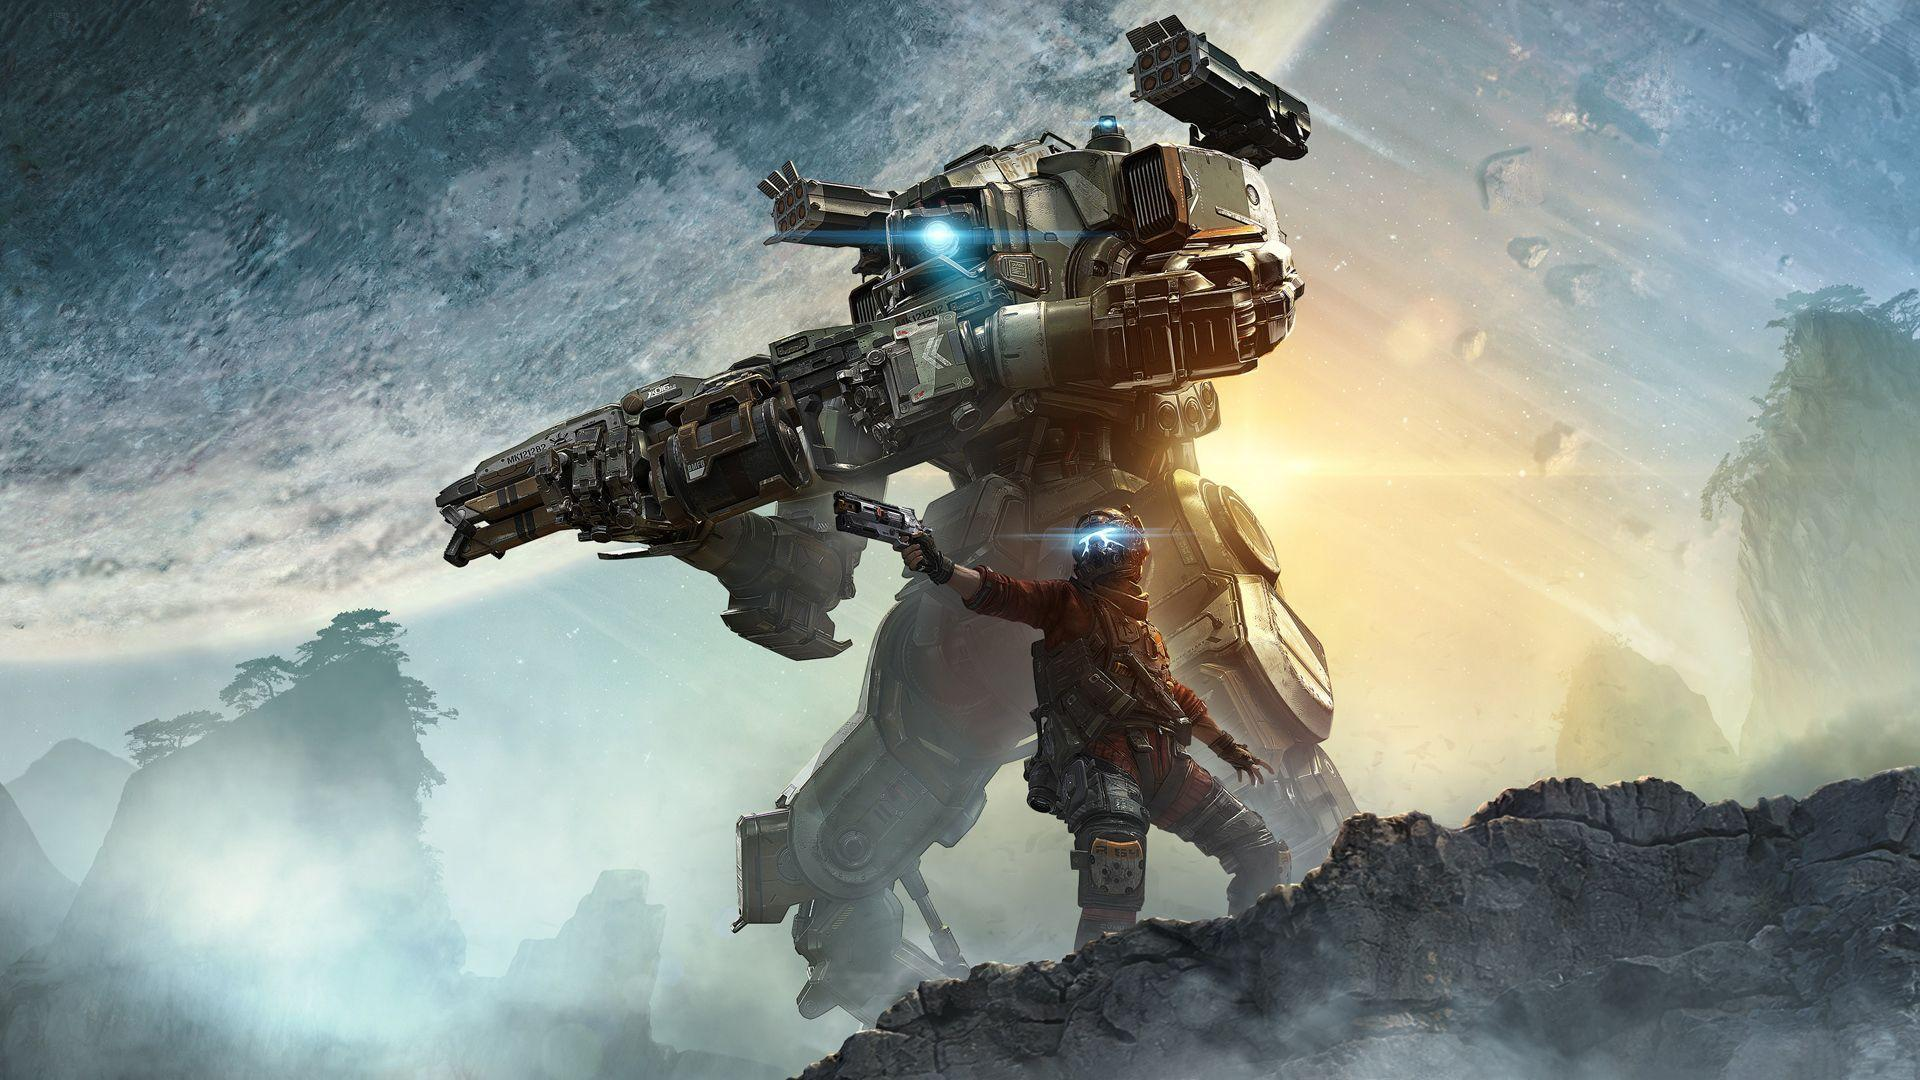 45 Titanfall 2 HD Wallpapers